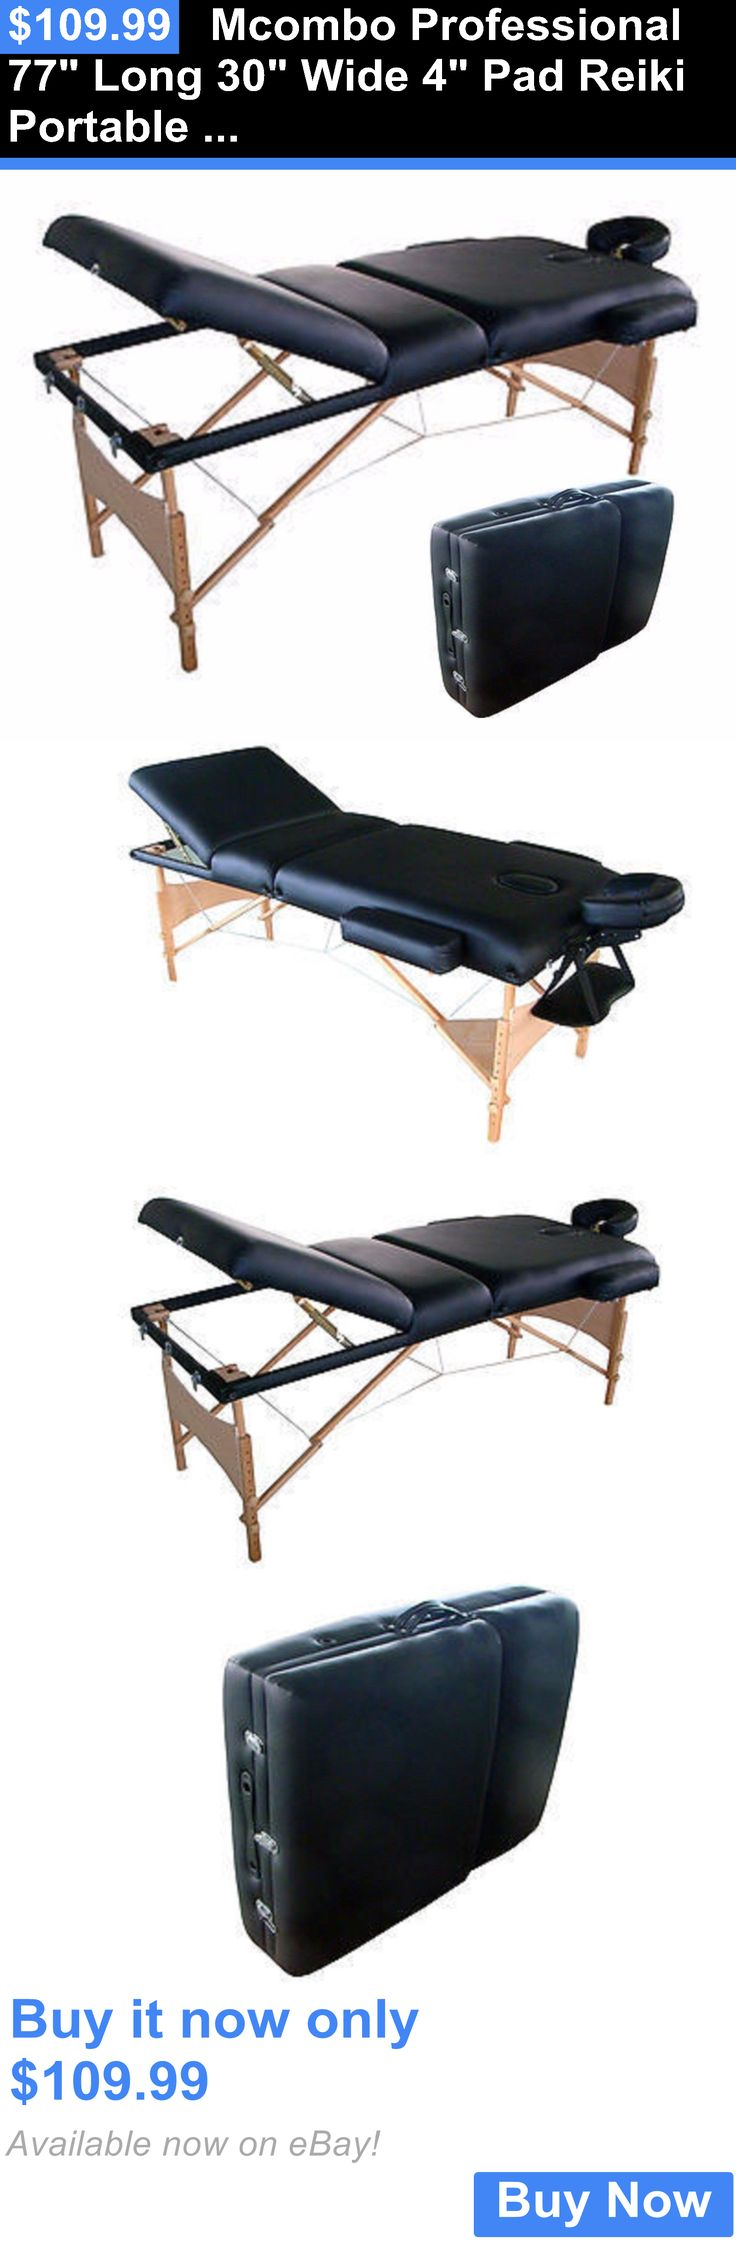 Massagers: Mcombo Professional 77 Long 30 Wide 4 Pad Reiki Portable Massage Table Sl34bk BUY IT NOW ONLY: $109.99